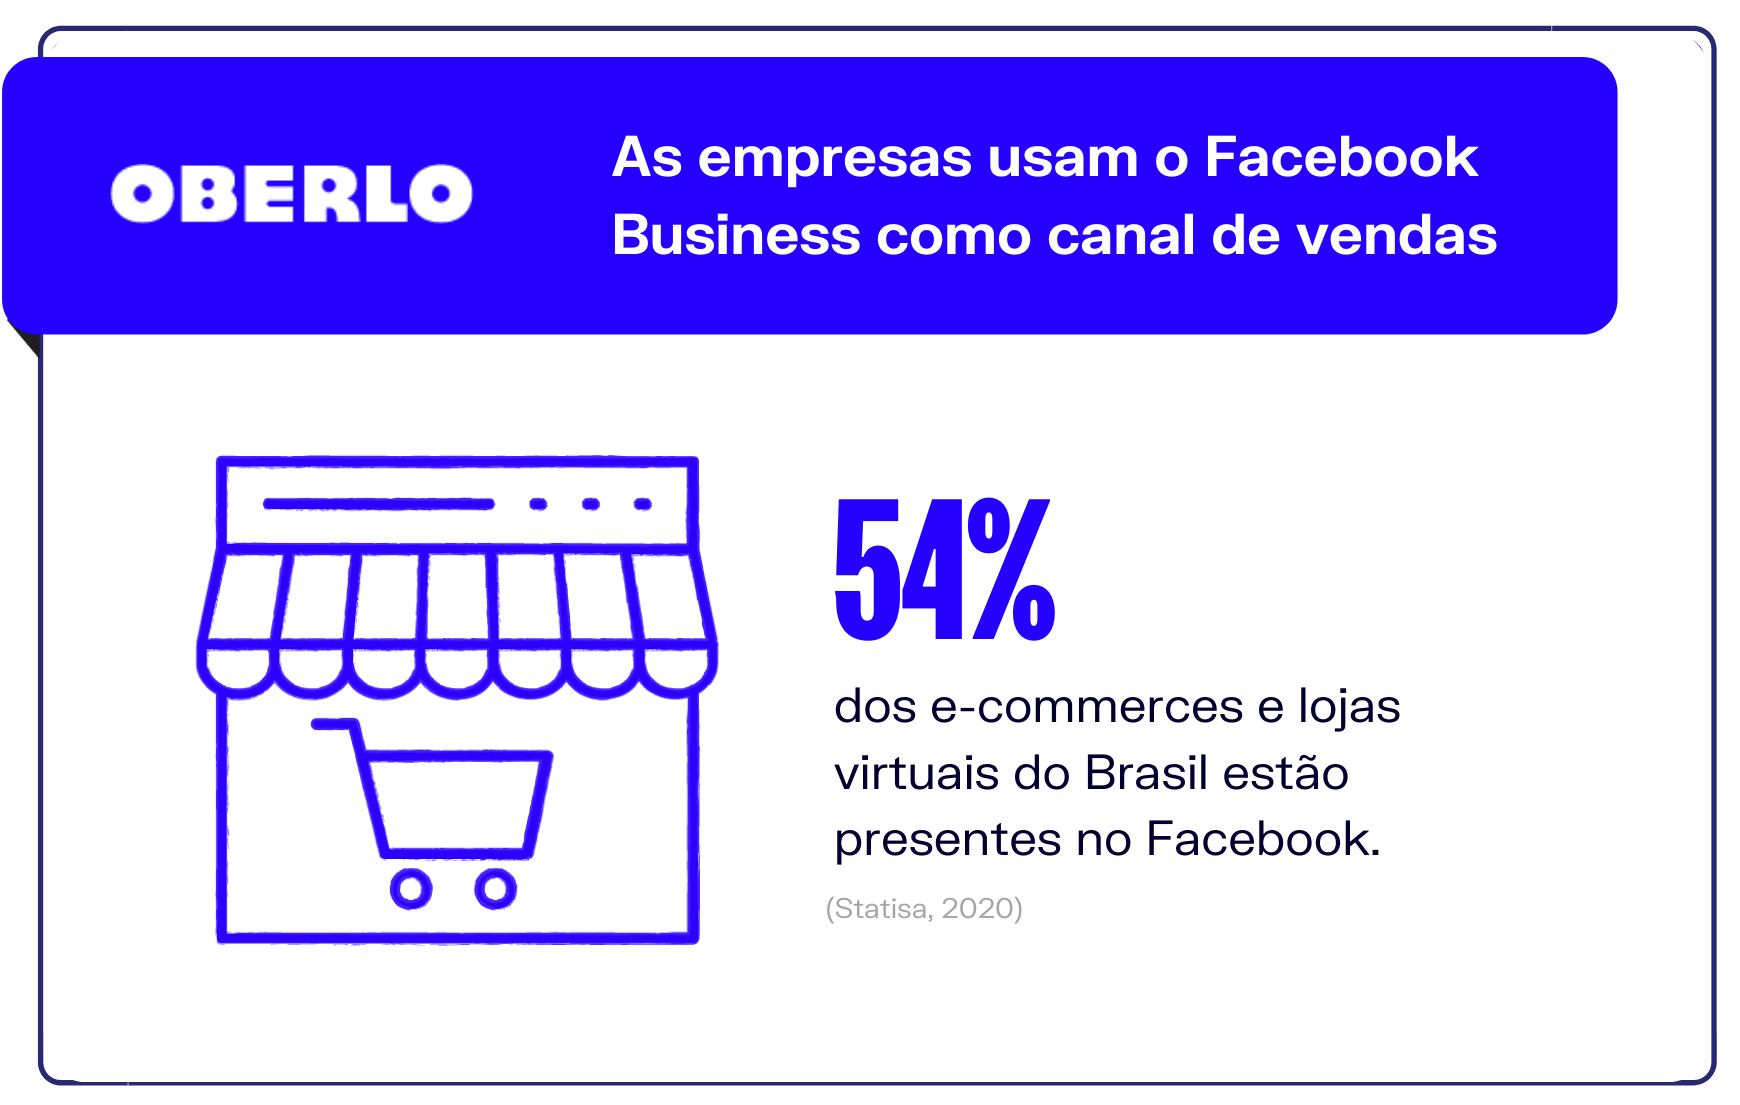 As empresas usam o Facebook Business como canal de vendas